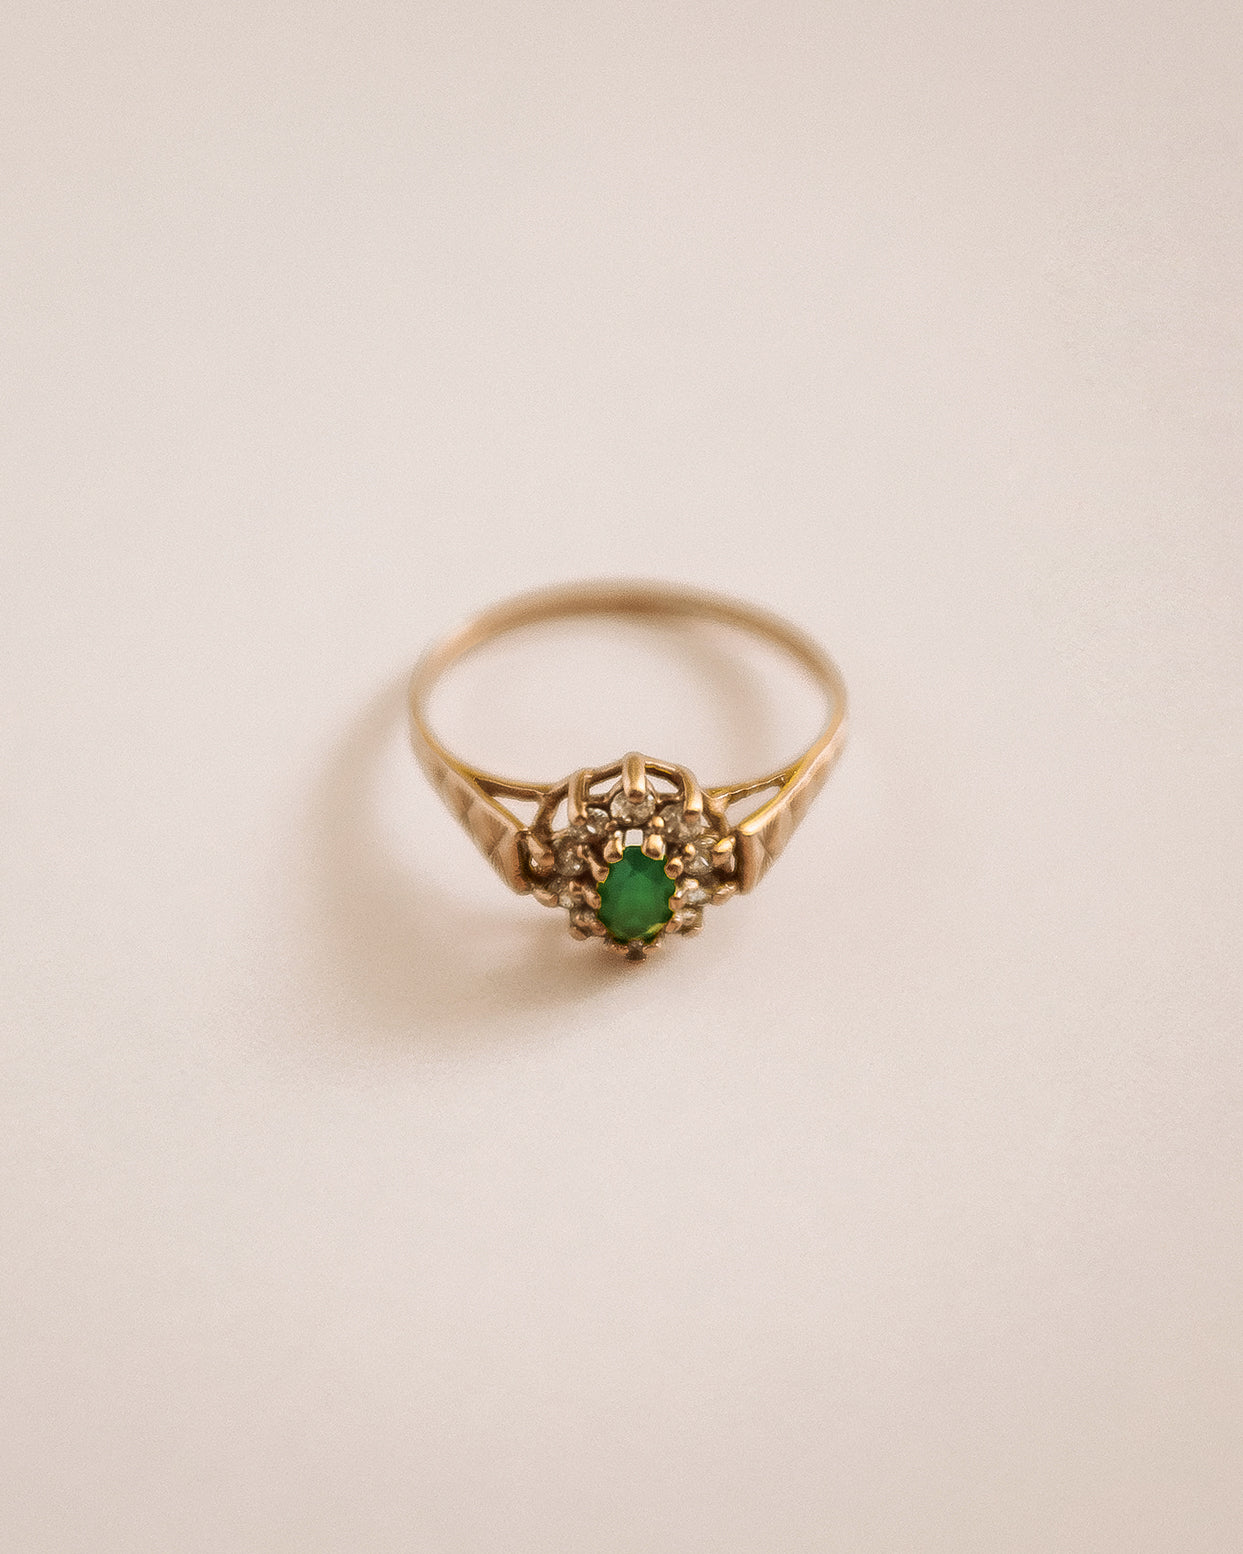 Image of Marlene 9ct Gold Emerald Ring